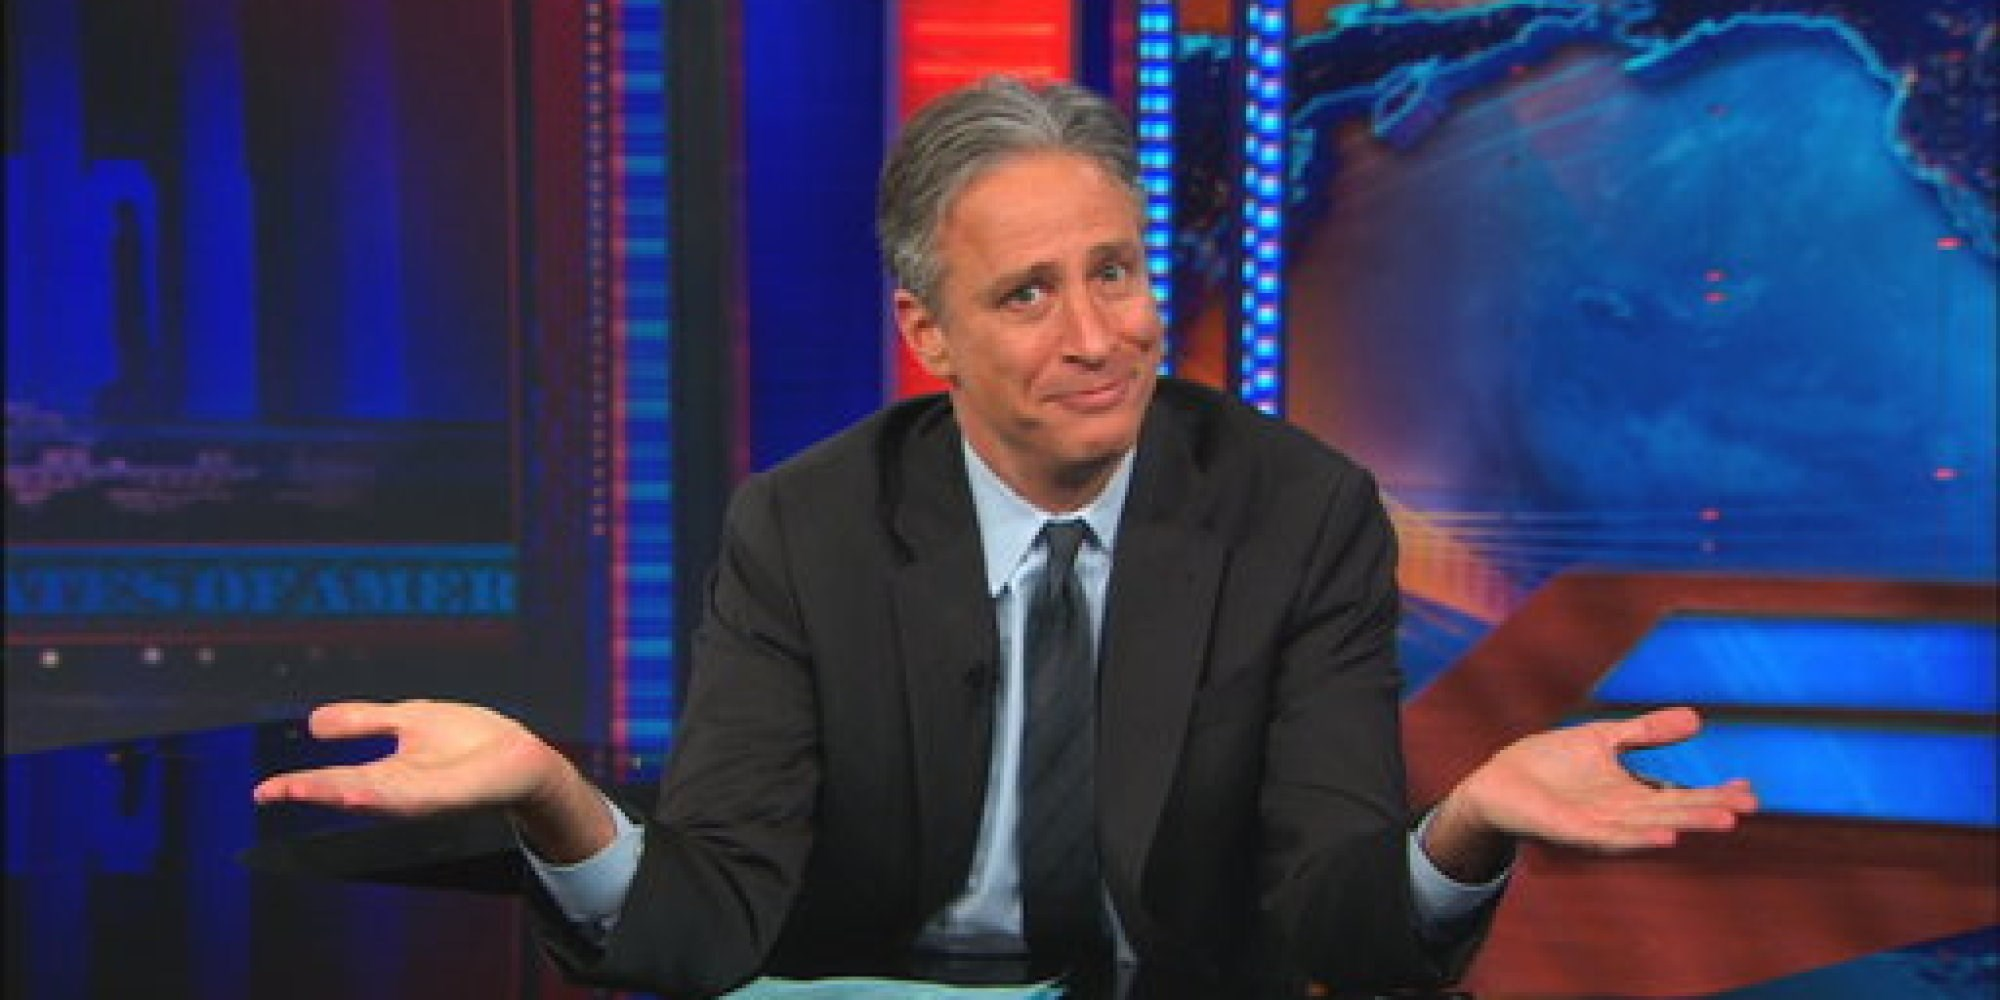 jon stewart an anylisis Political satire has achieved high popularity in the united states, heavily influencing american views the face of political satire today is undoubtedly jon.